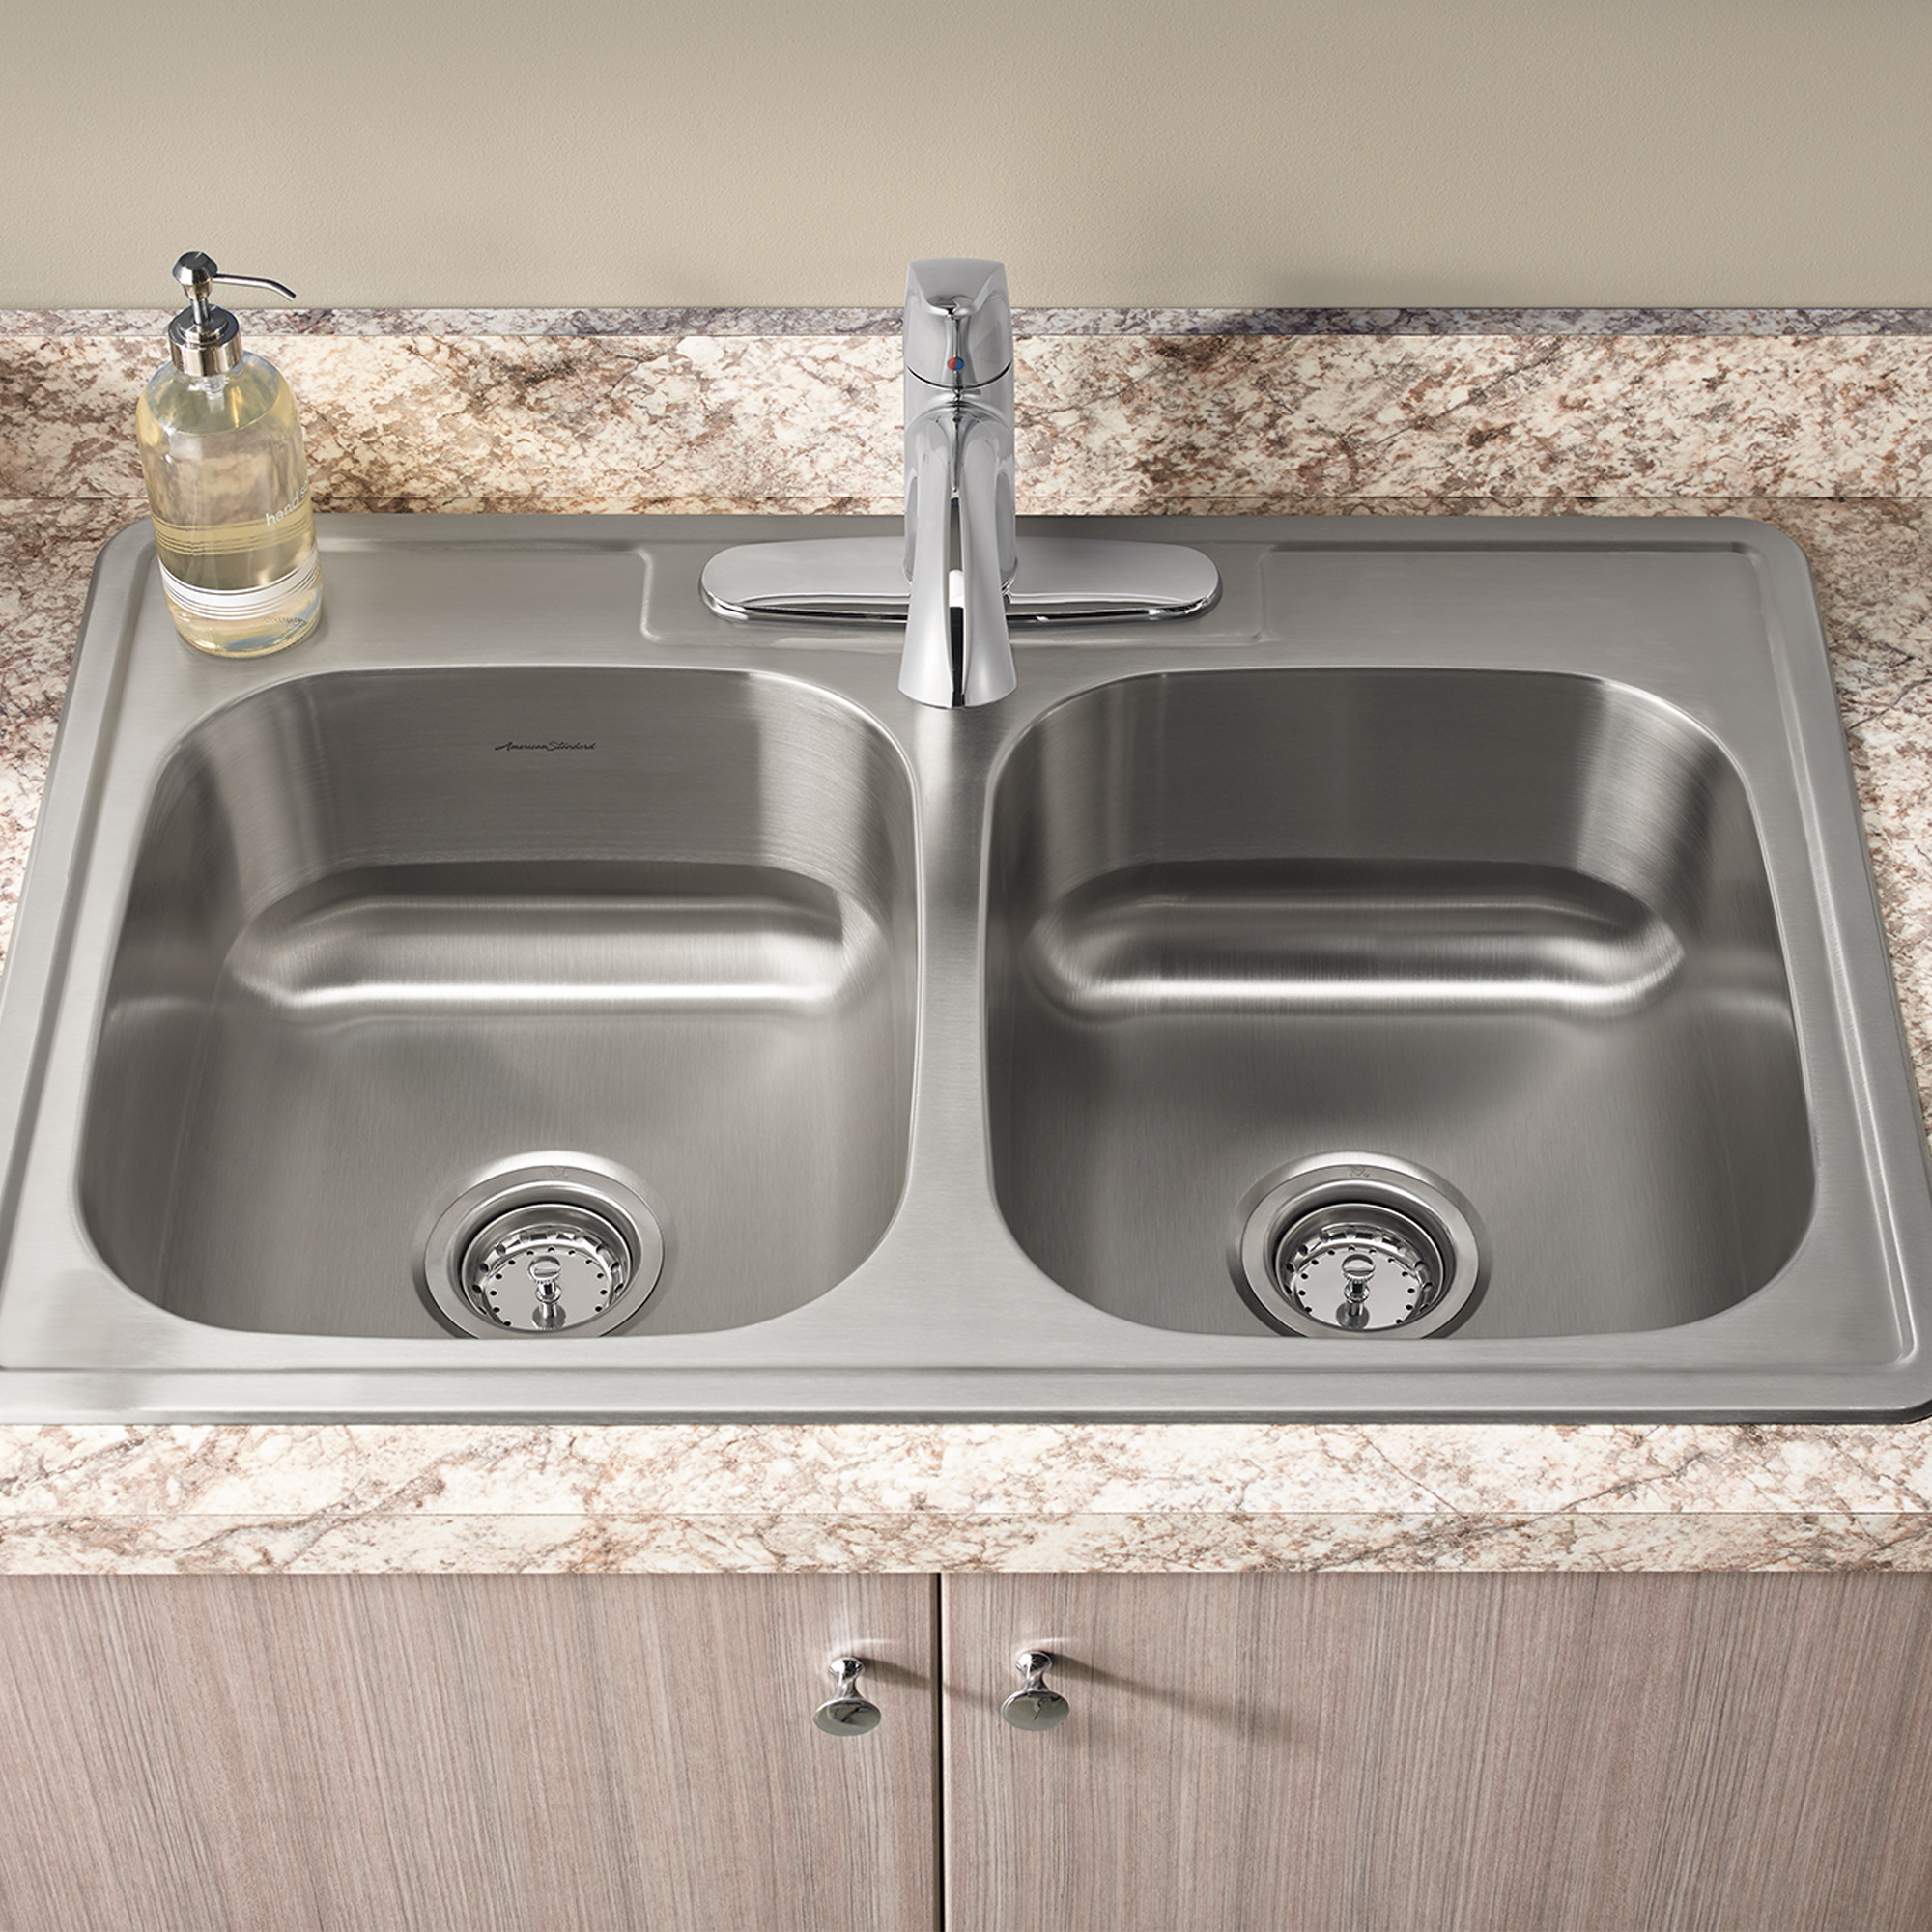 Kitchen sinks Colony ada 33x22 inch double sink kit with faucet YYSGTJR